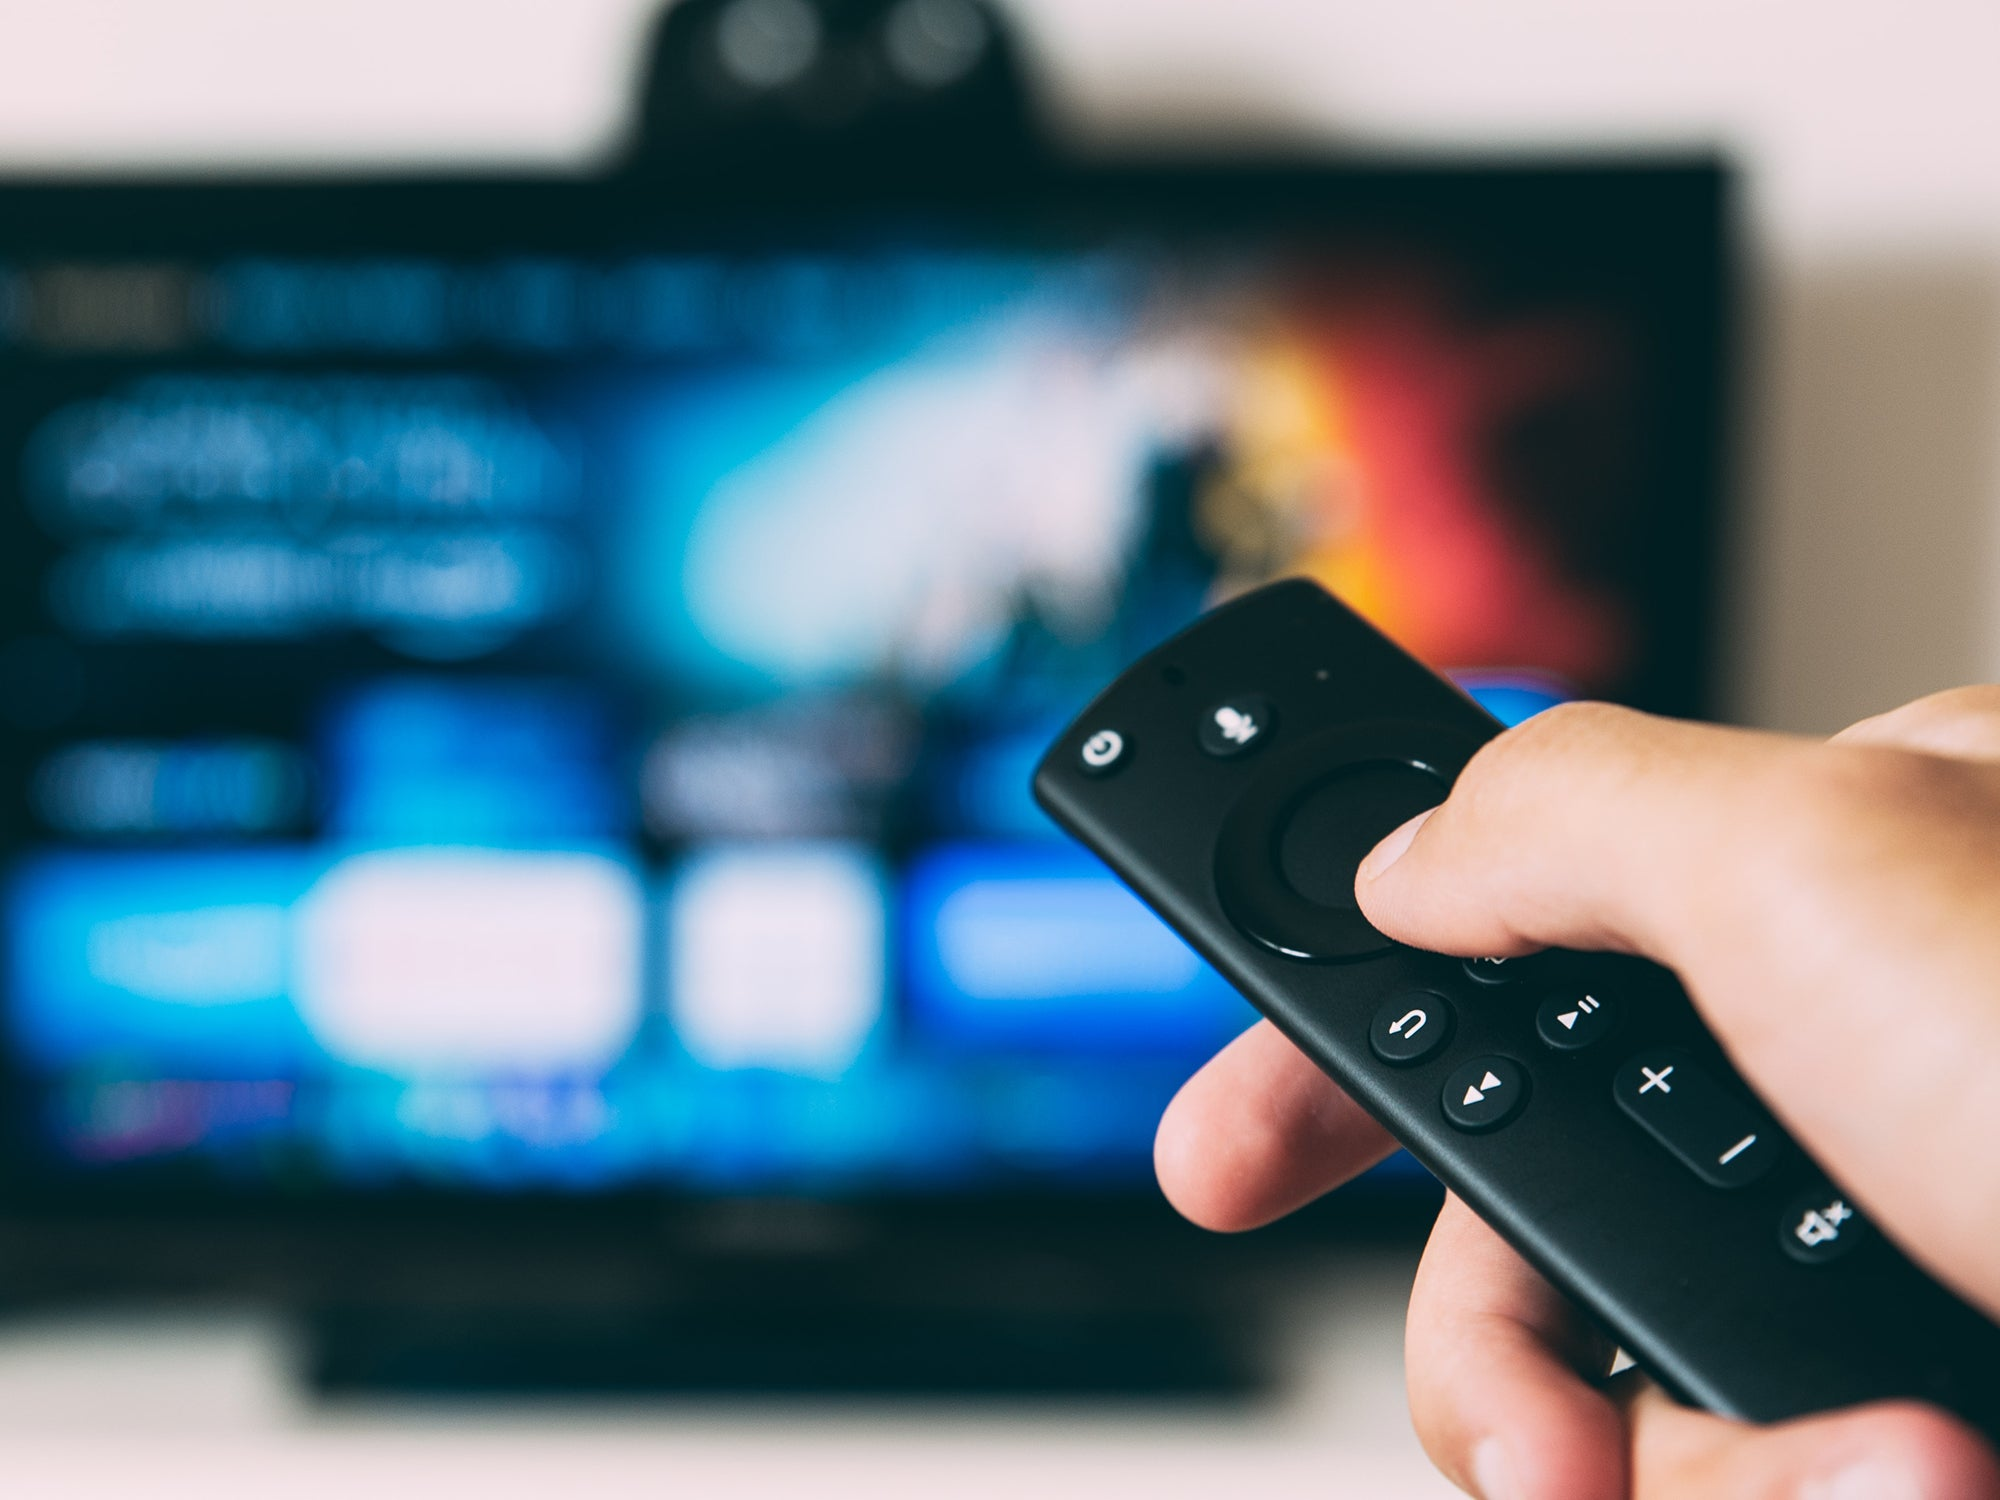 Hand holding Amazon Fire TV remote towards TV screen